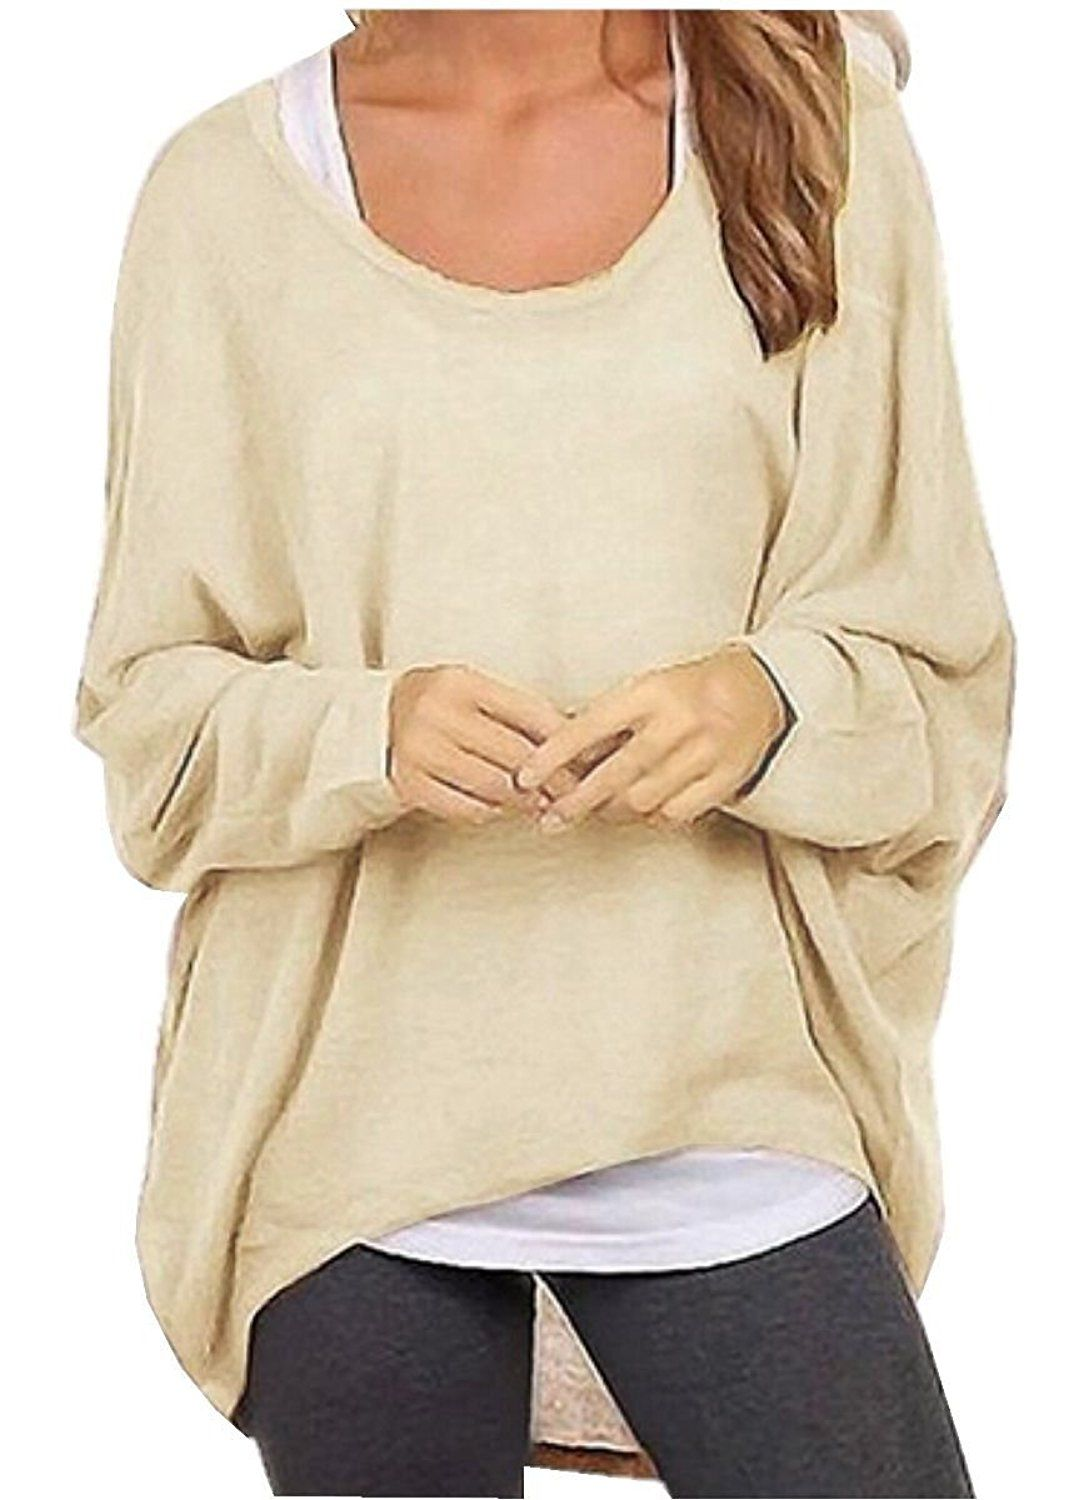 509dad740b7 Uget Women's Casual Oversized Baggy Off-Shoulder Shirts Batwing Sleeve  Pullover Tops at Amazon Women's Clothing store: